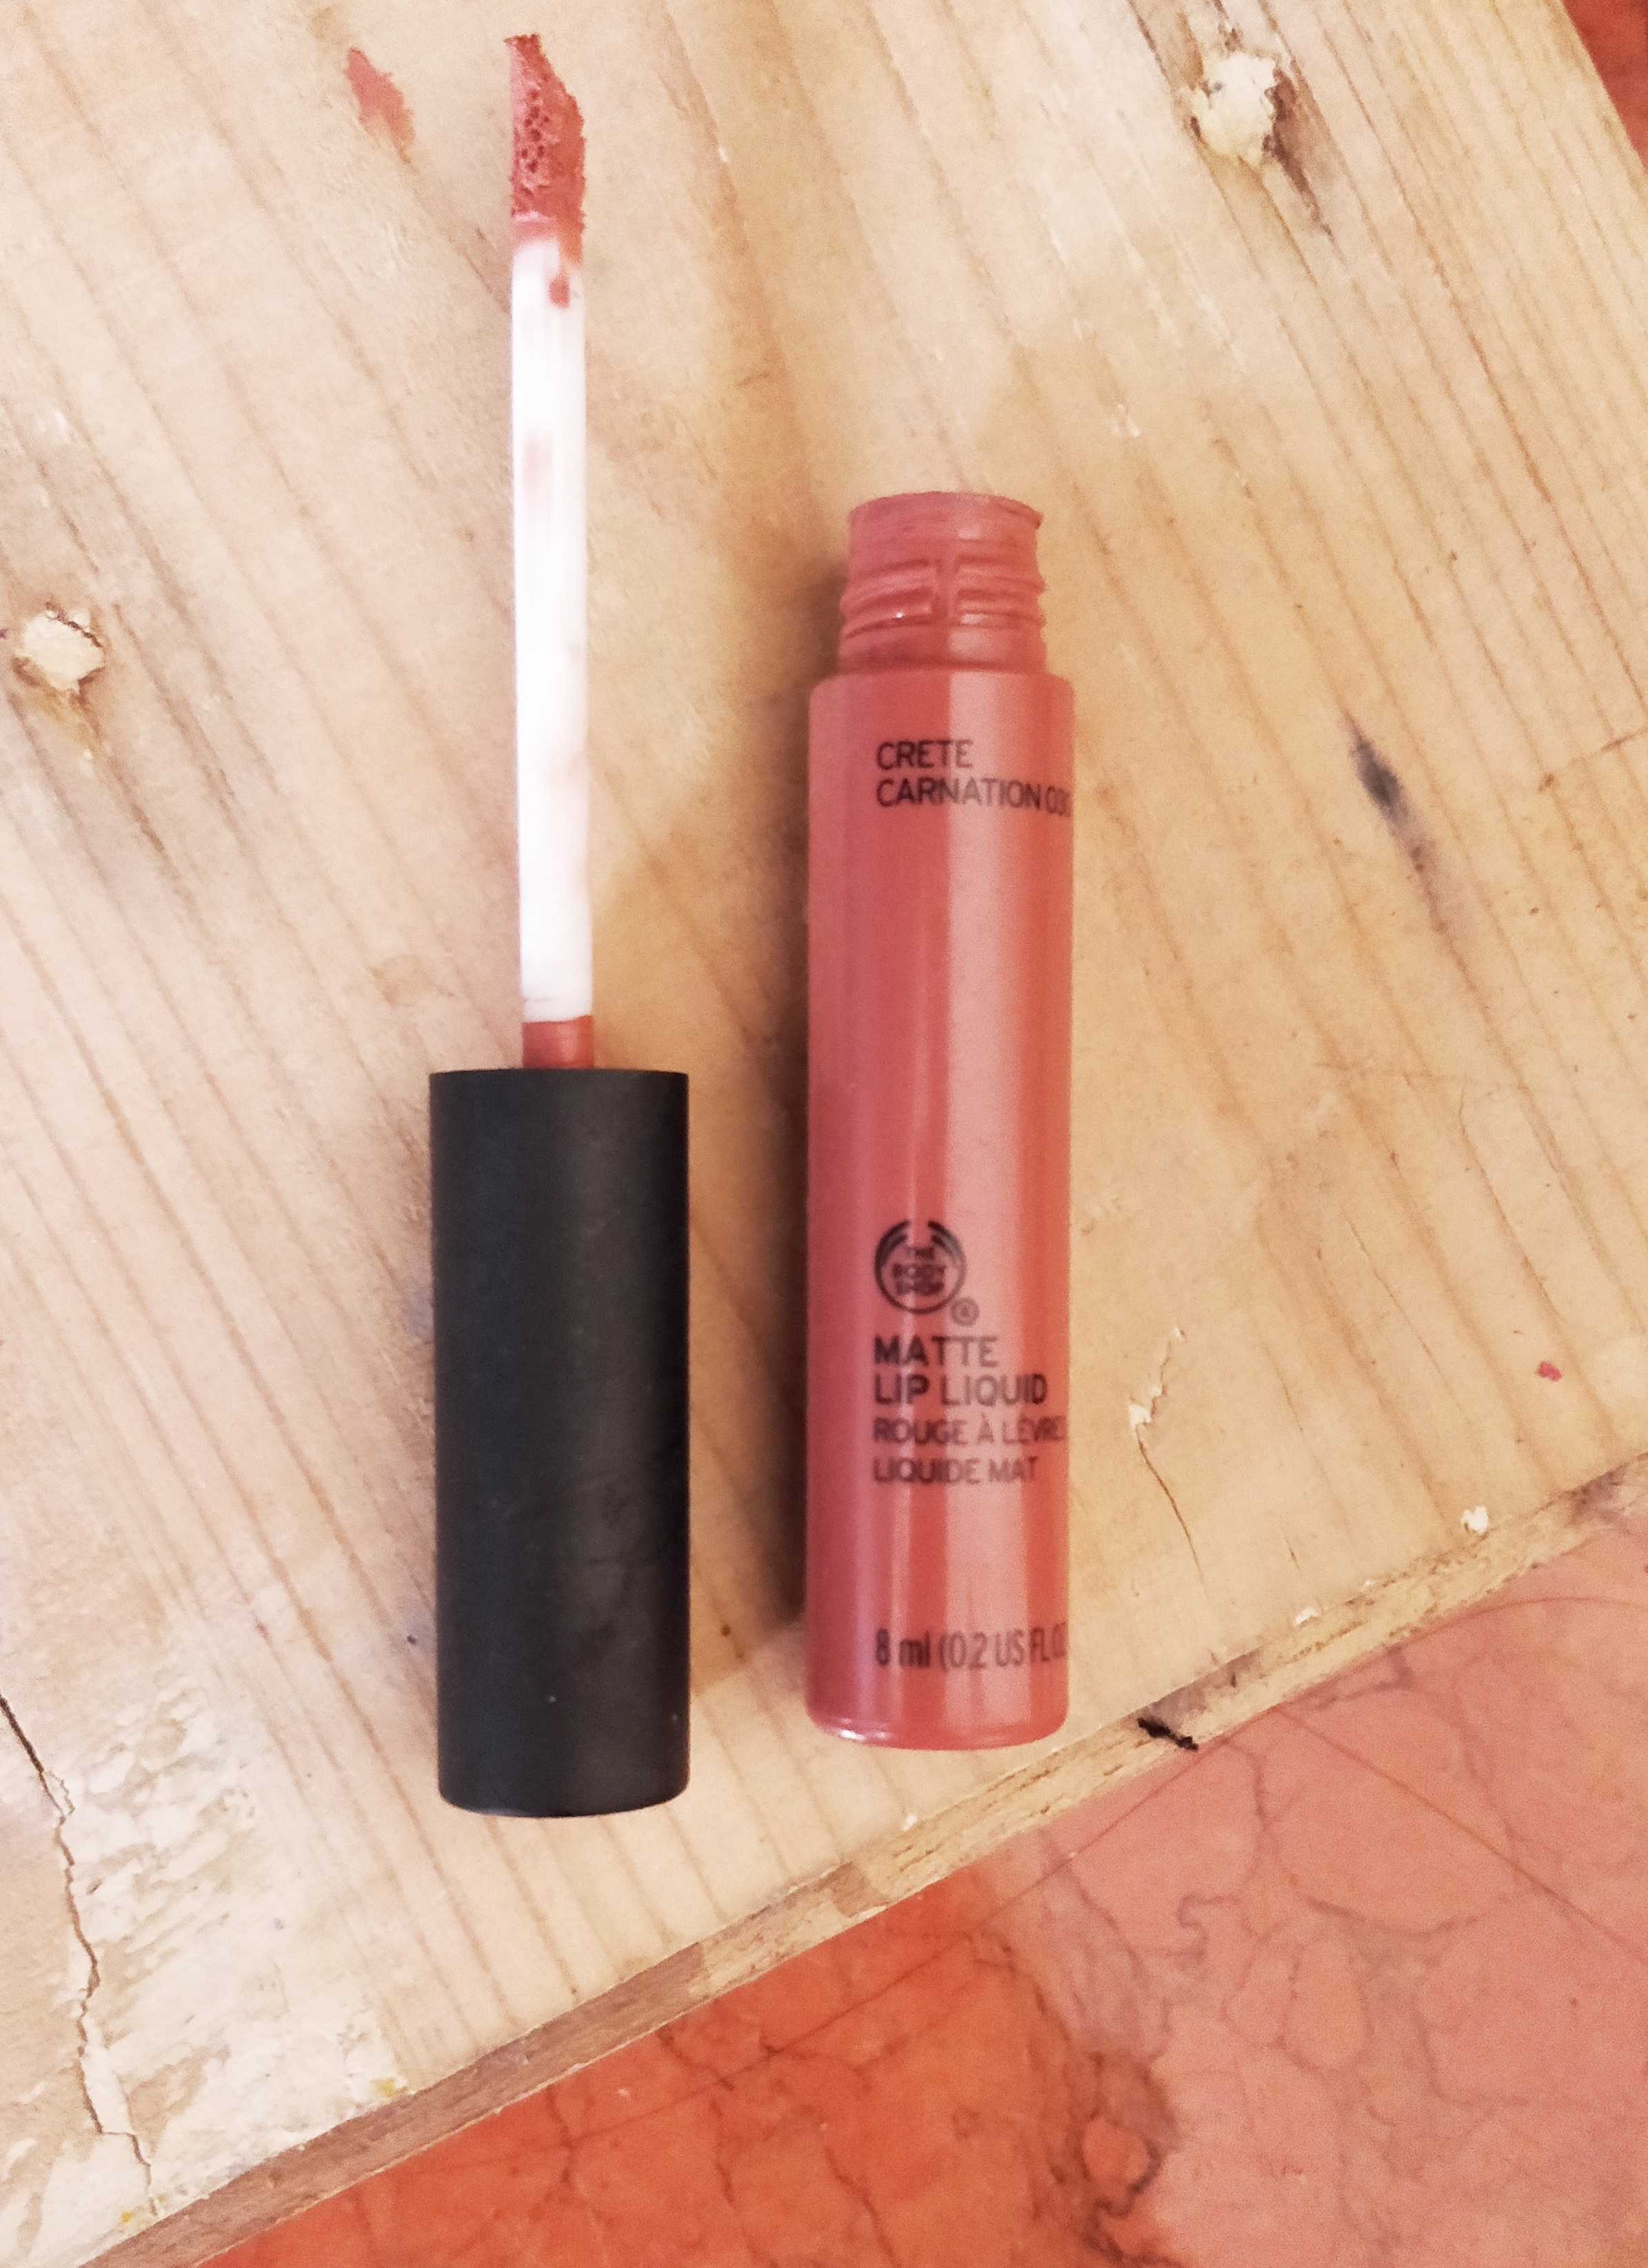 The Body Shop Matte Lip Liquid -Matte liquid , scat boring colors !-By devika98